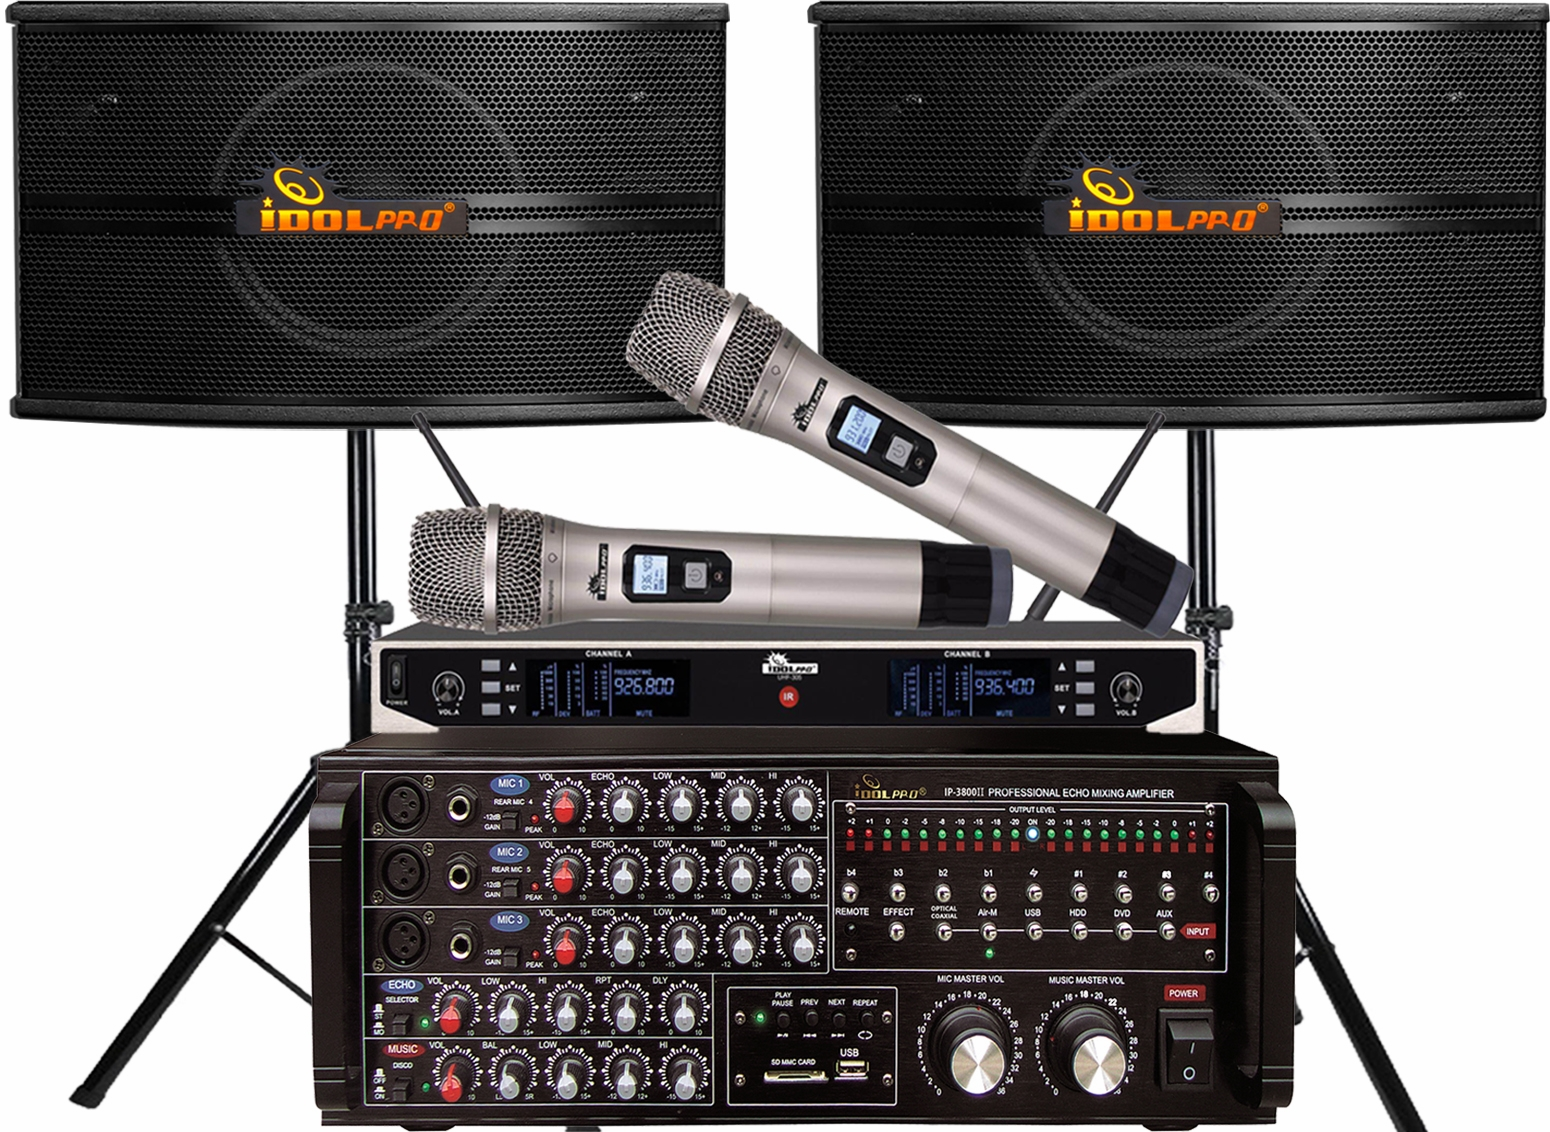 "<font color="" blue"">PACKAGE 1 </font> -- IPS-590 Speakers & IP-3800 II Mixing Amplifier & UHF-305 Wireless Microphones & Stands"